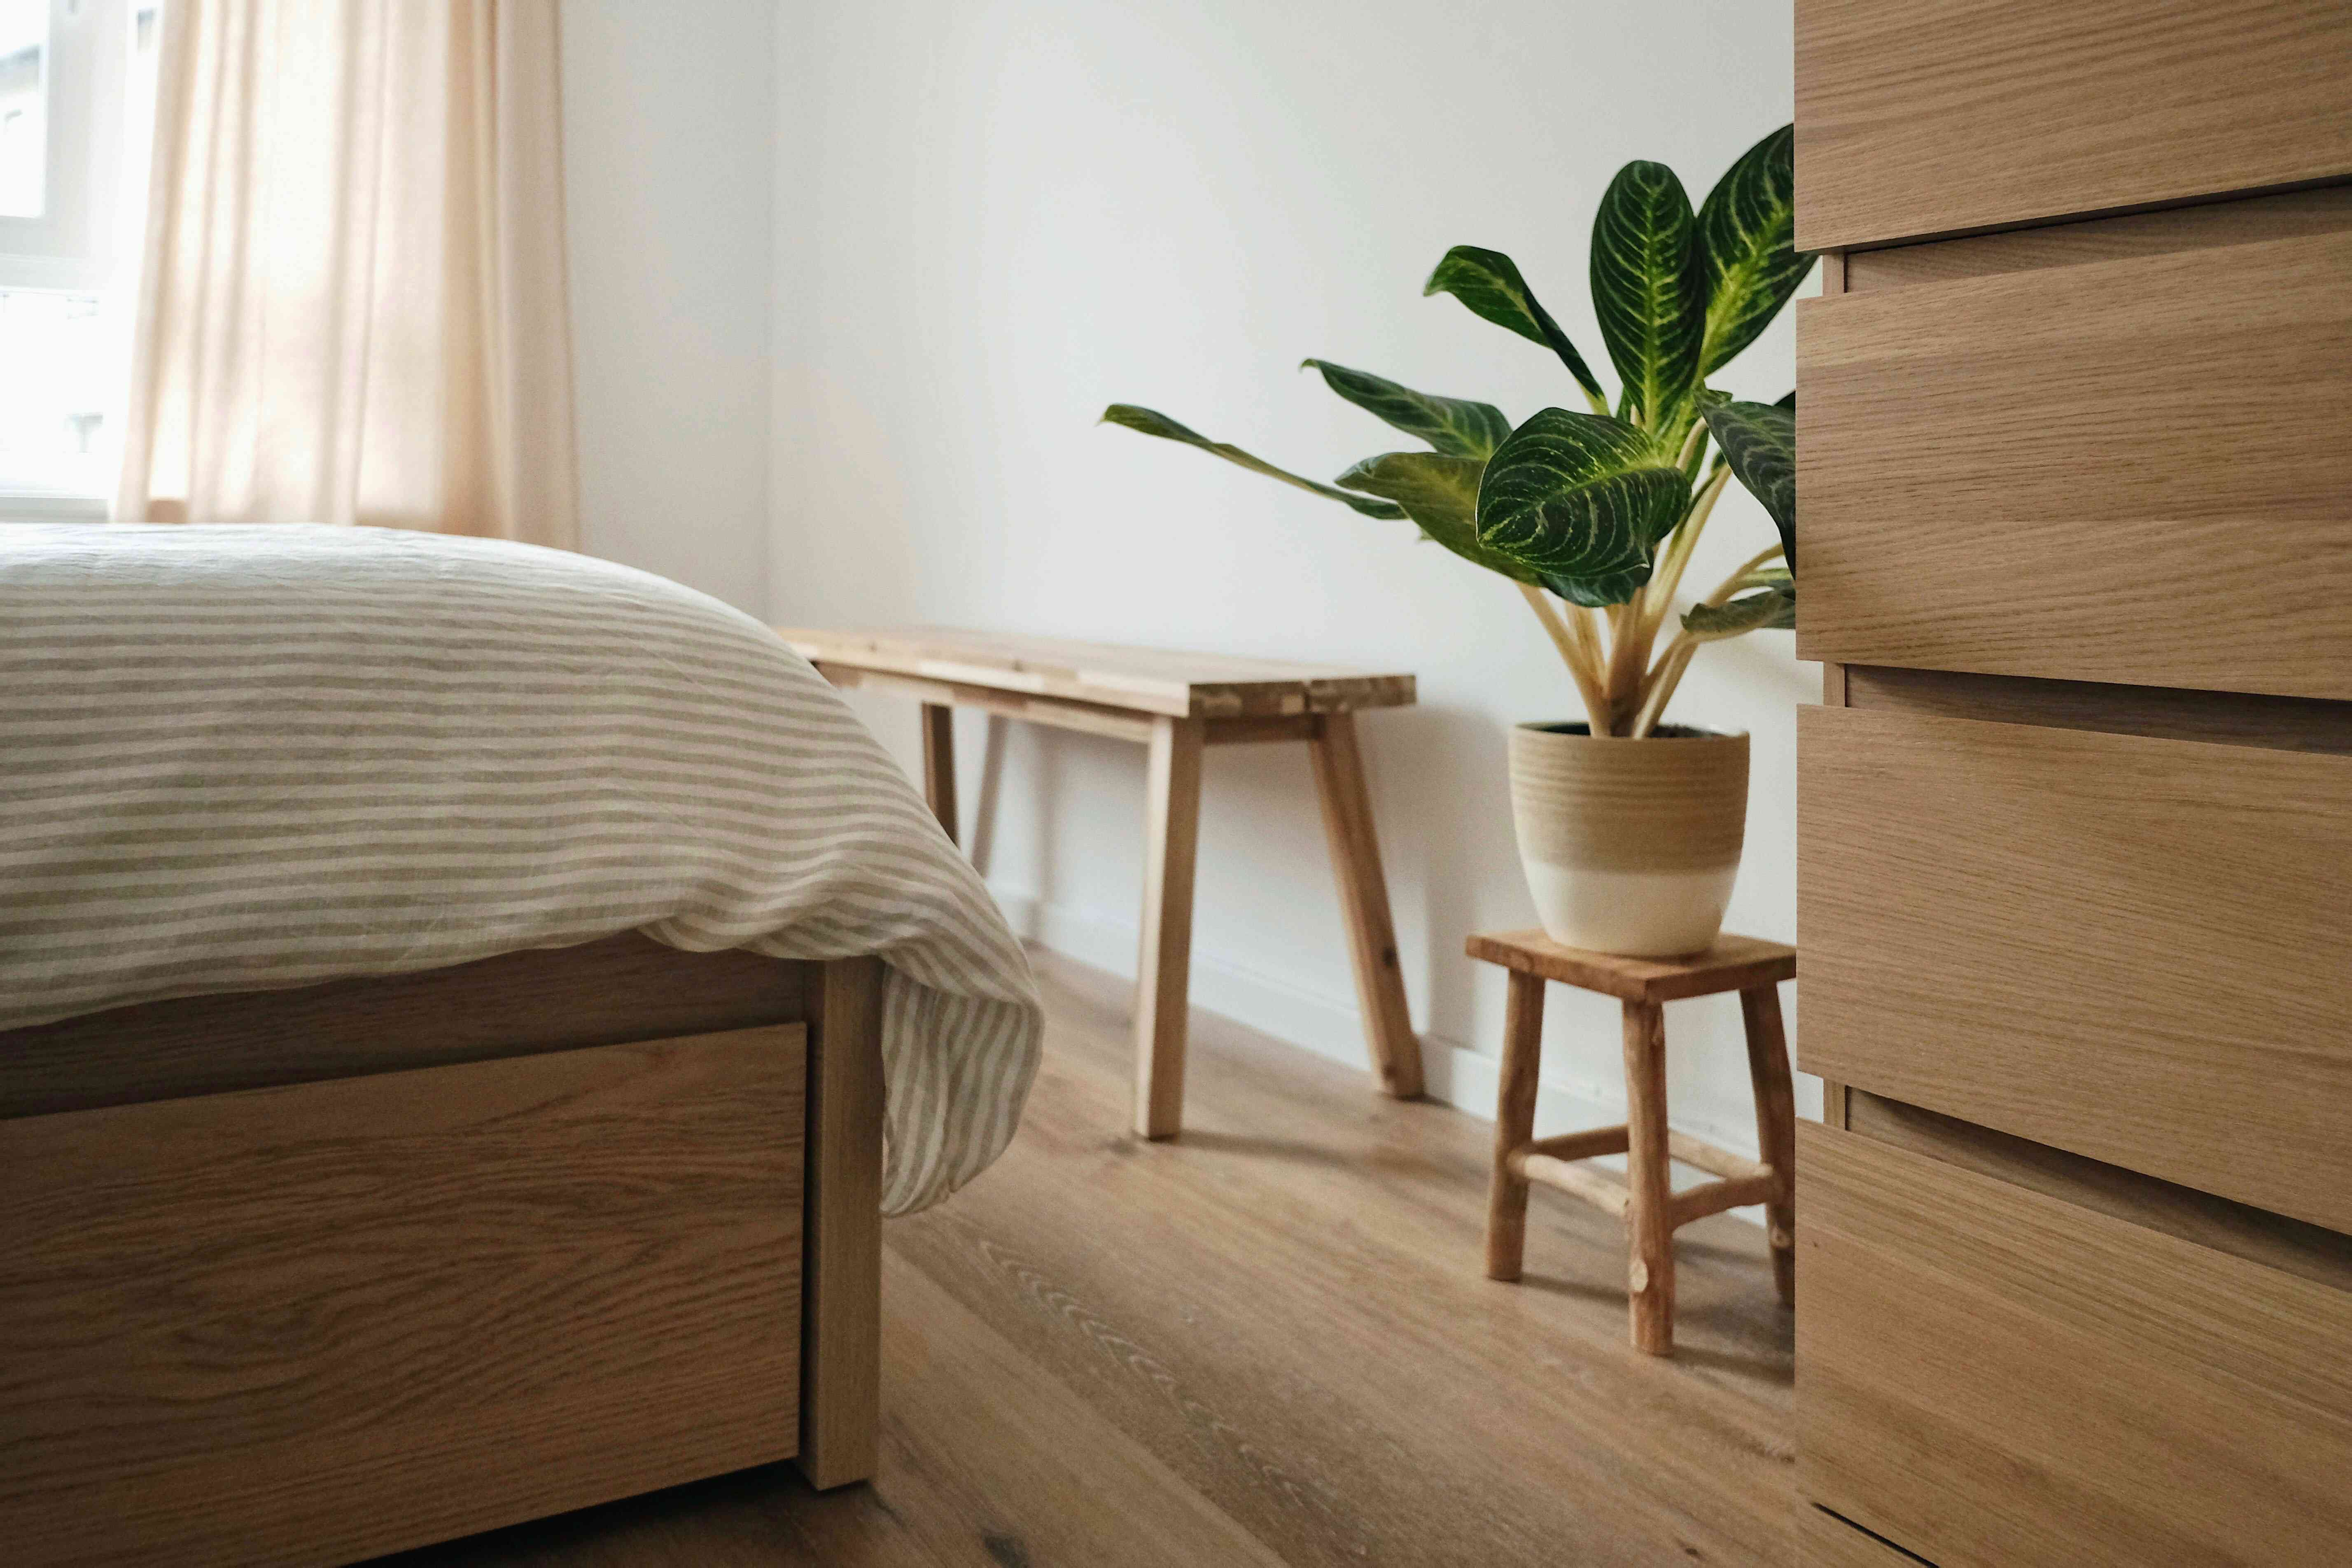 bedroom with wood furniture and a green houseplant